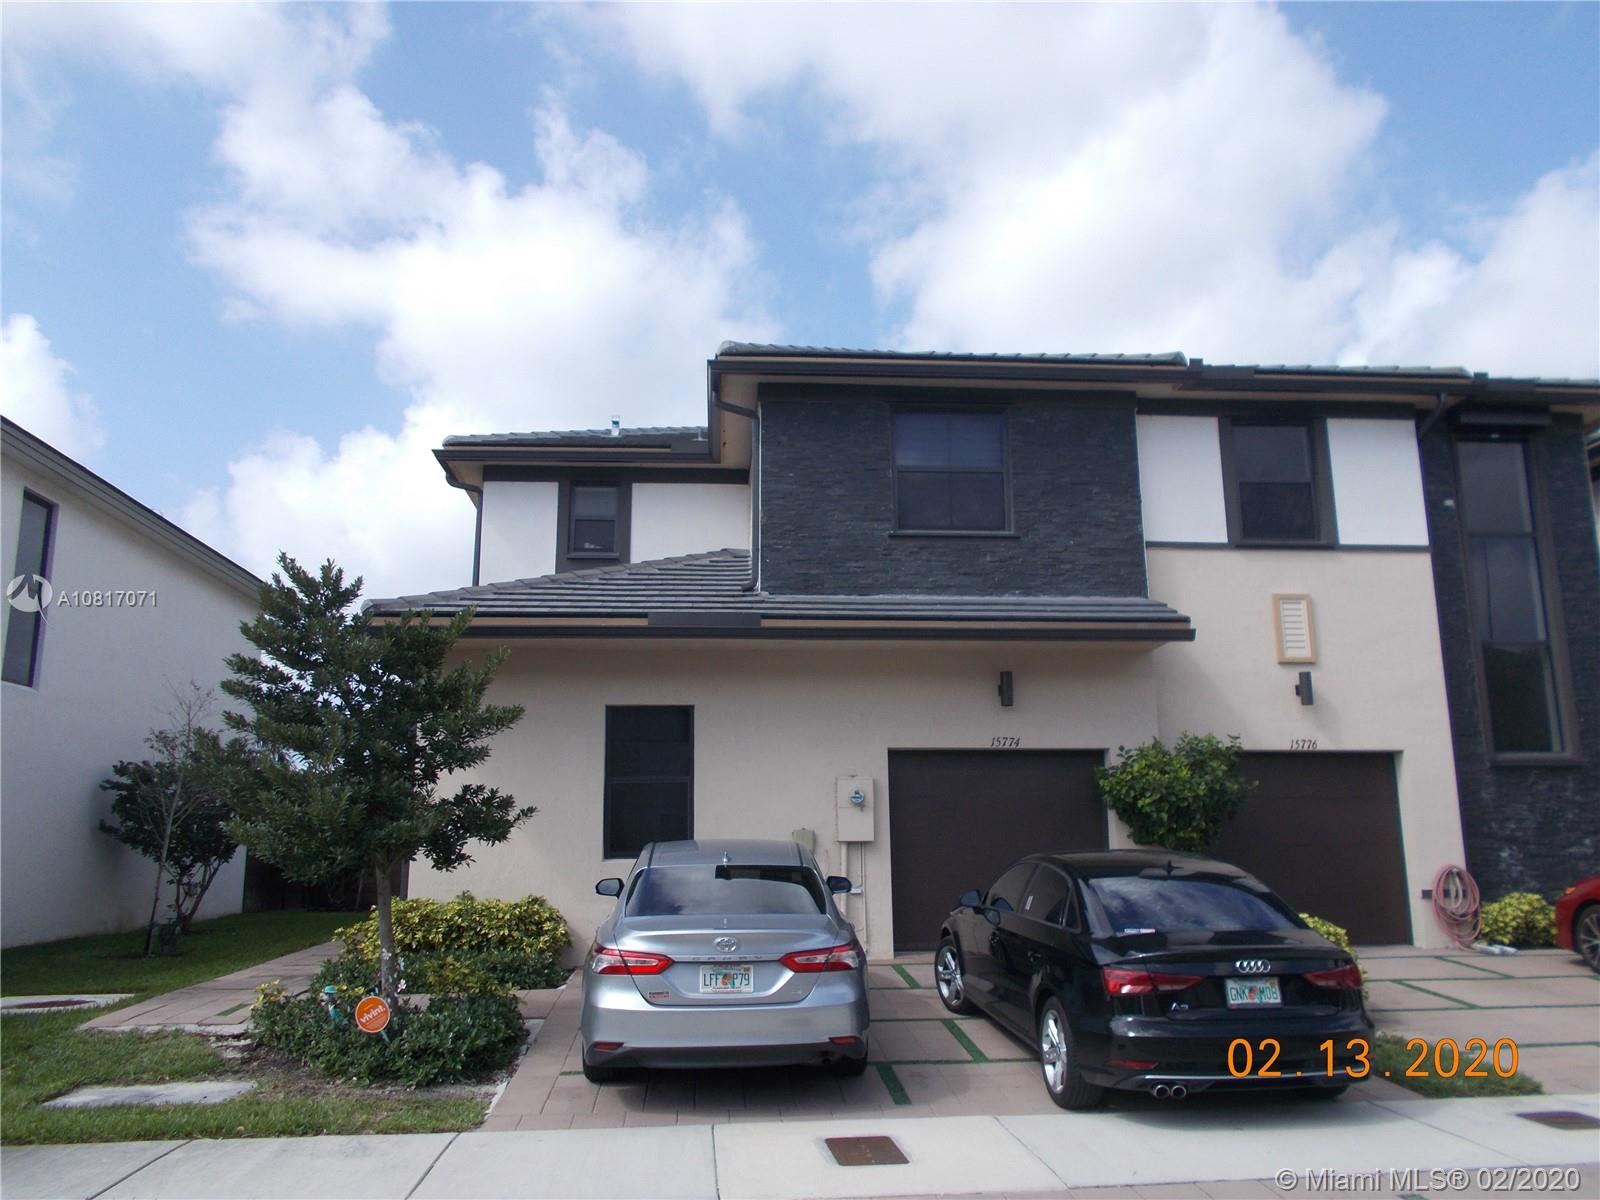 15774 NW 91st Ct #1 For Sale A10817071, FL